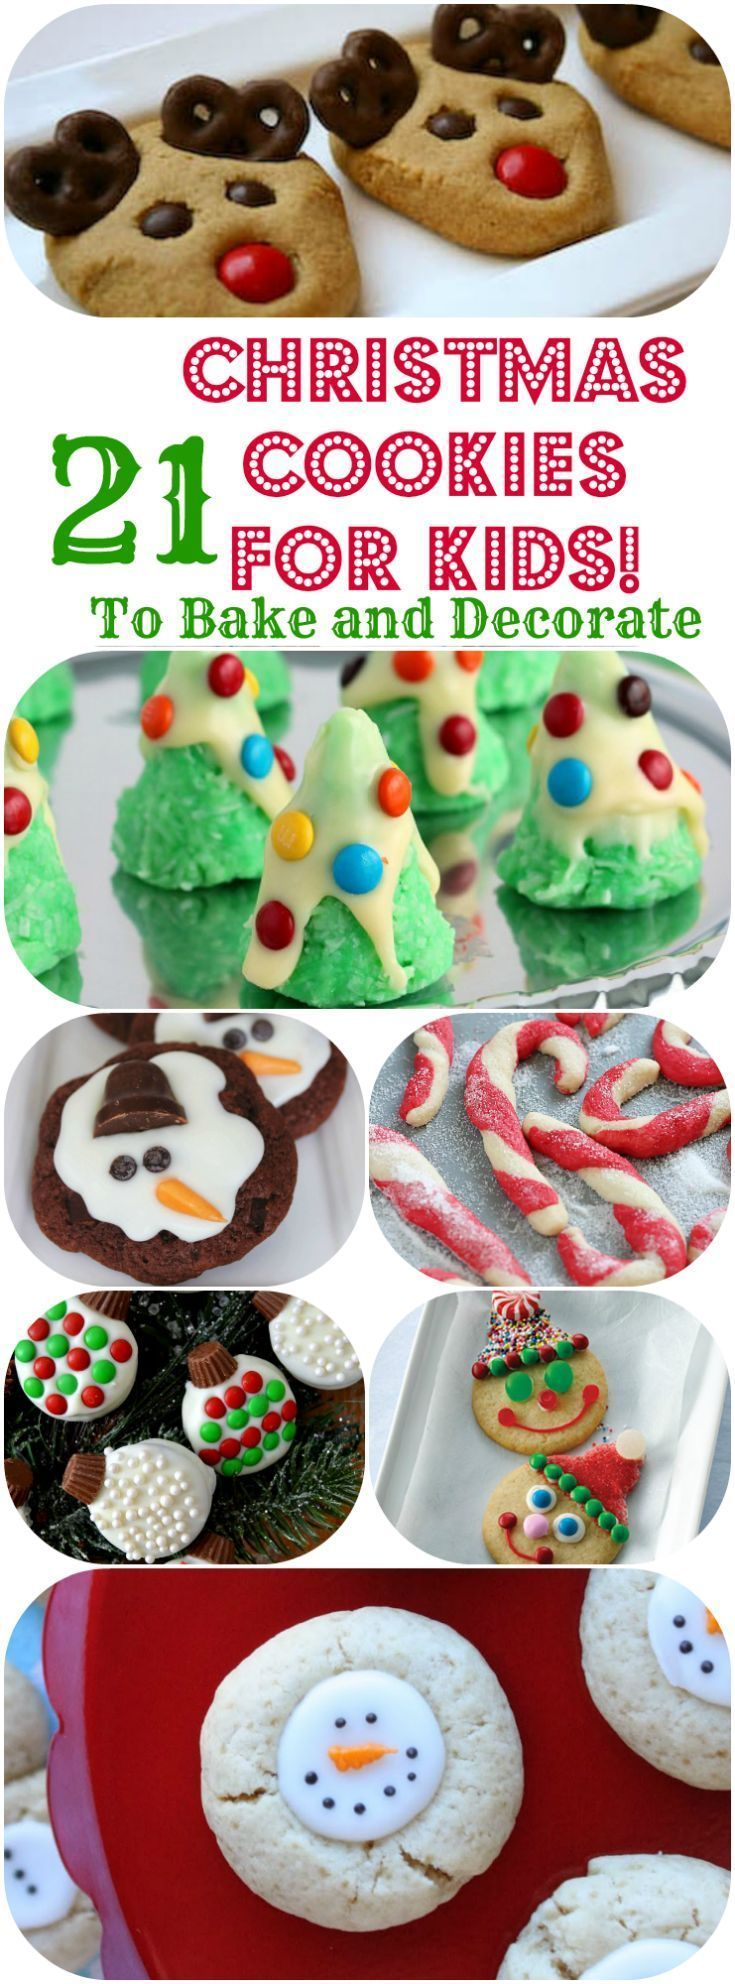 100 cookie recipes for kids on pinterest funfetti